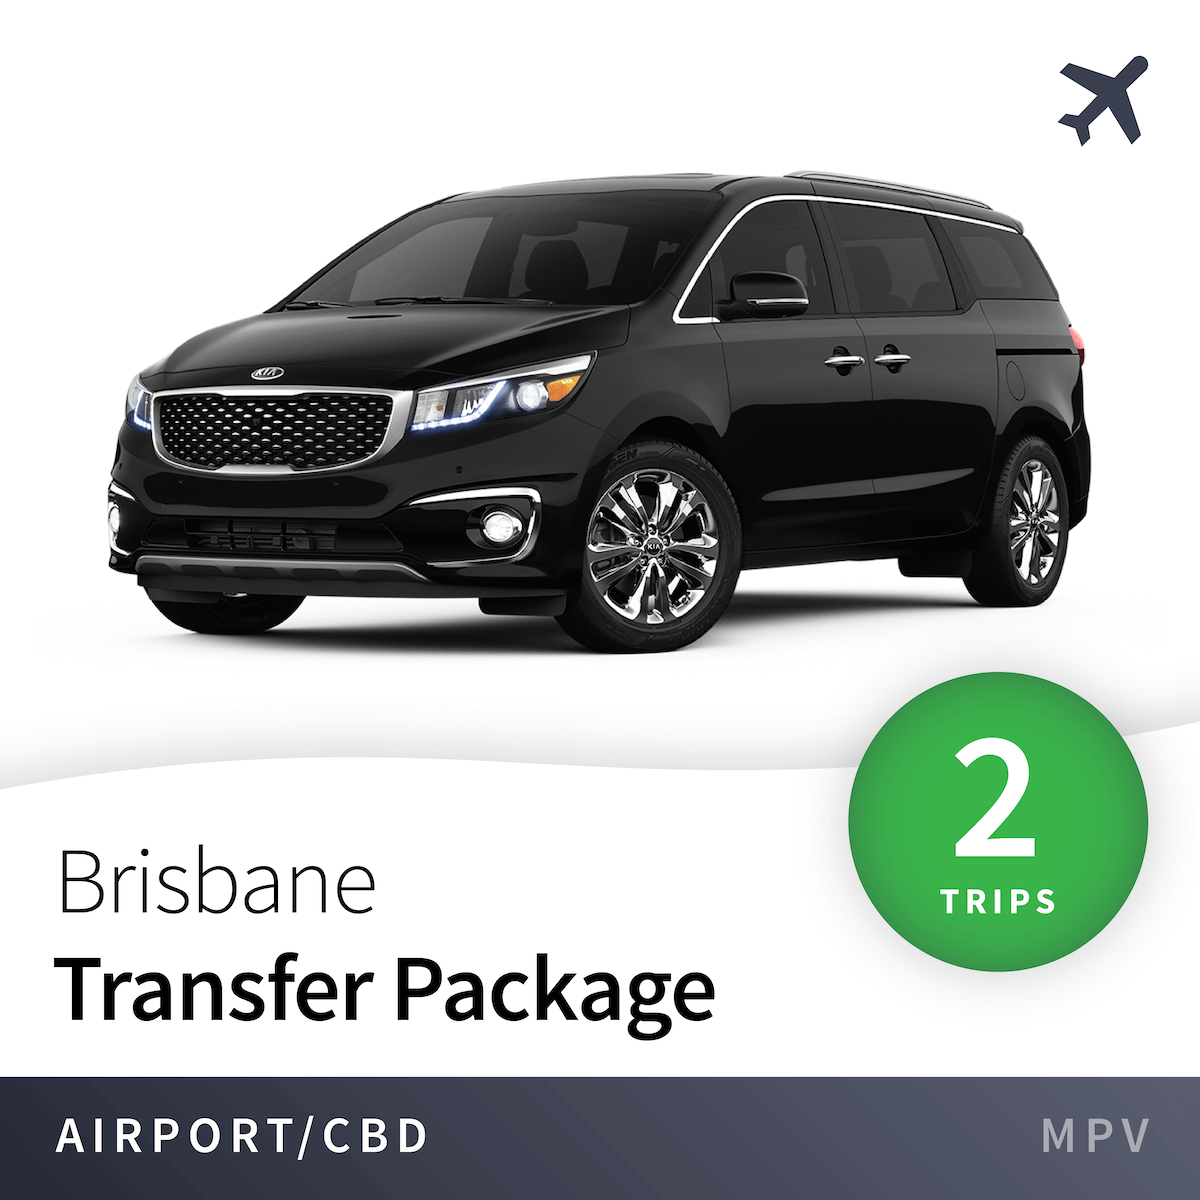 Brisbane Airport Transfer Package - MPV (2 Trips) 15